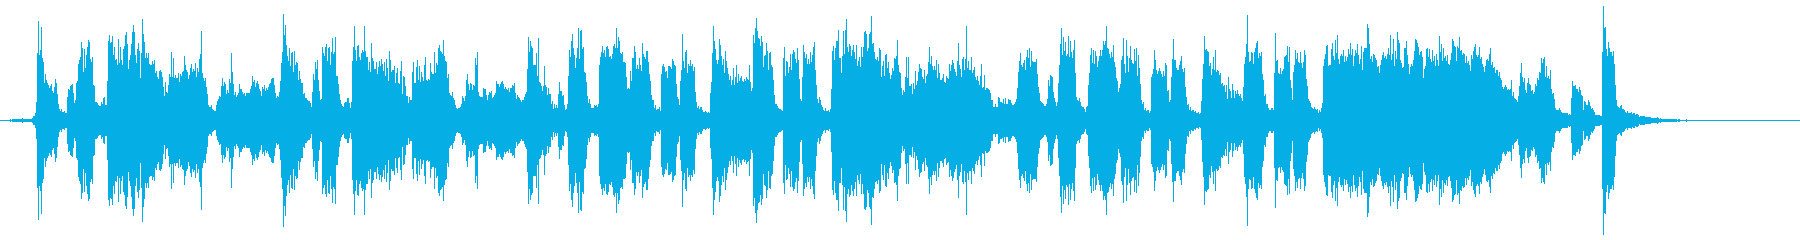 Birthday song with 4 beat a cappella's reproduced waveform